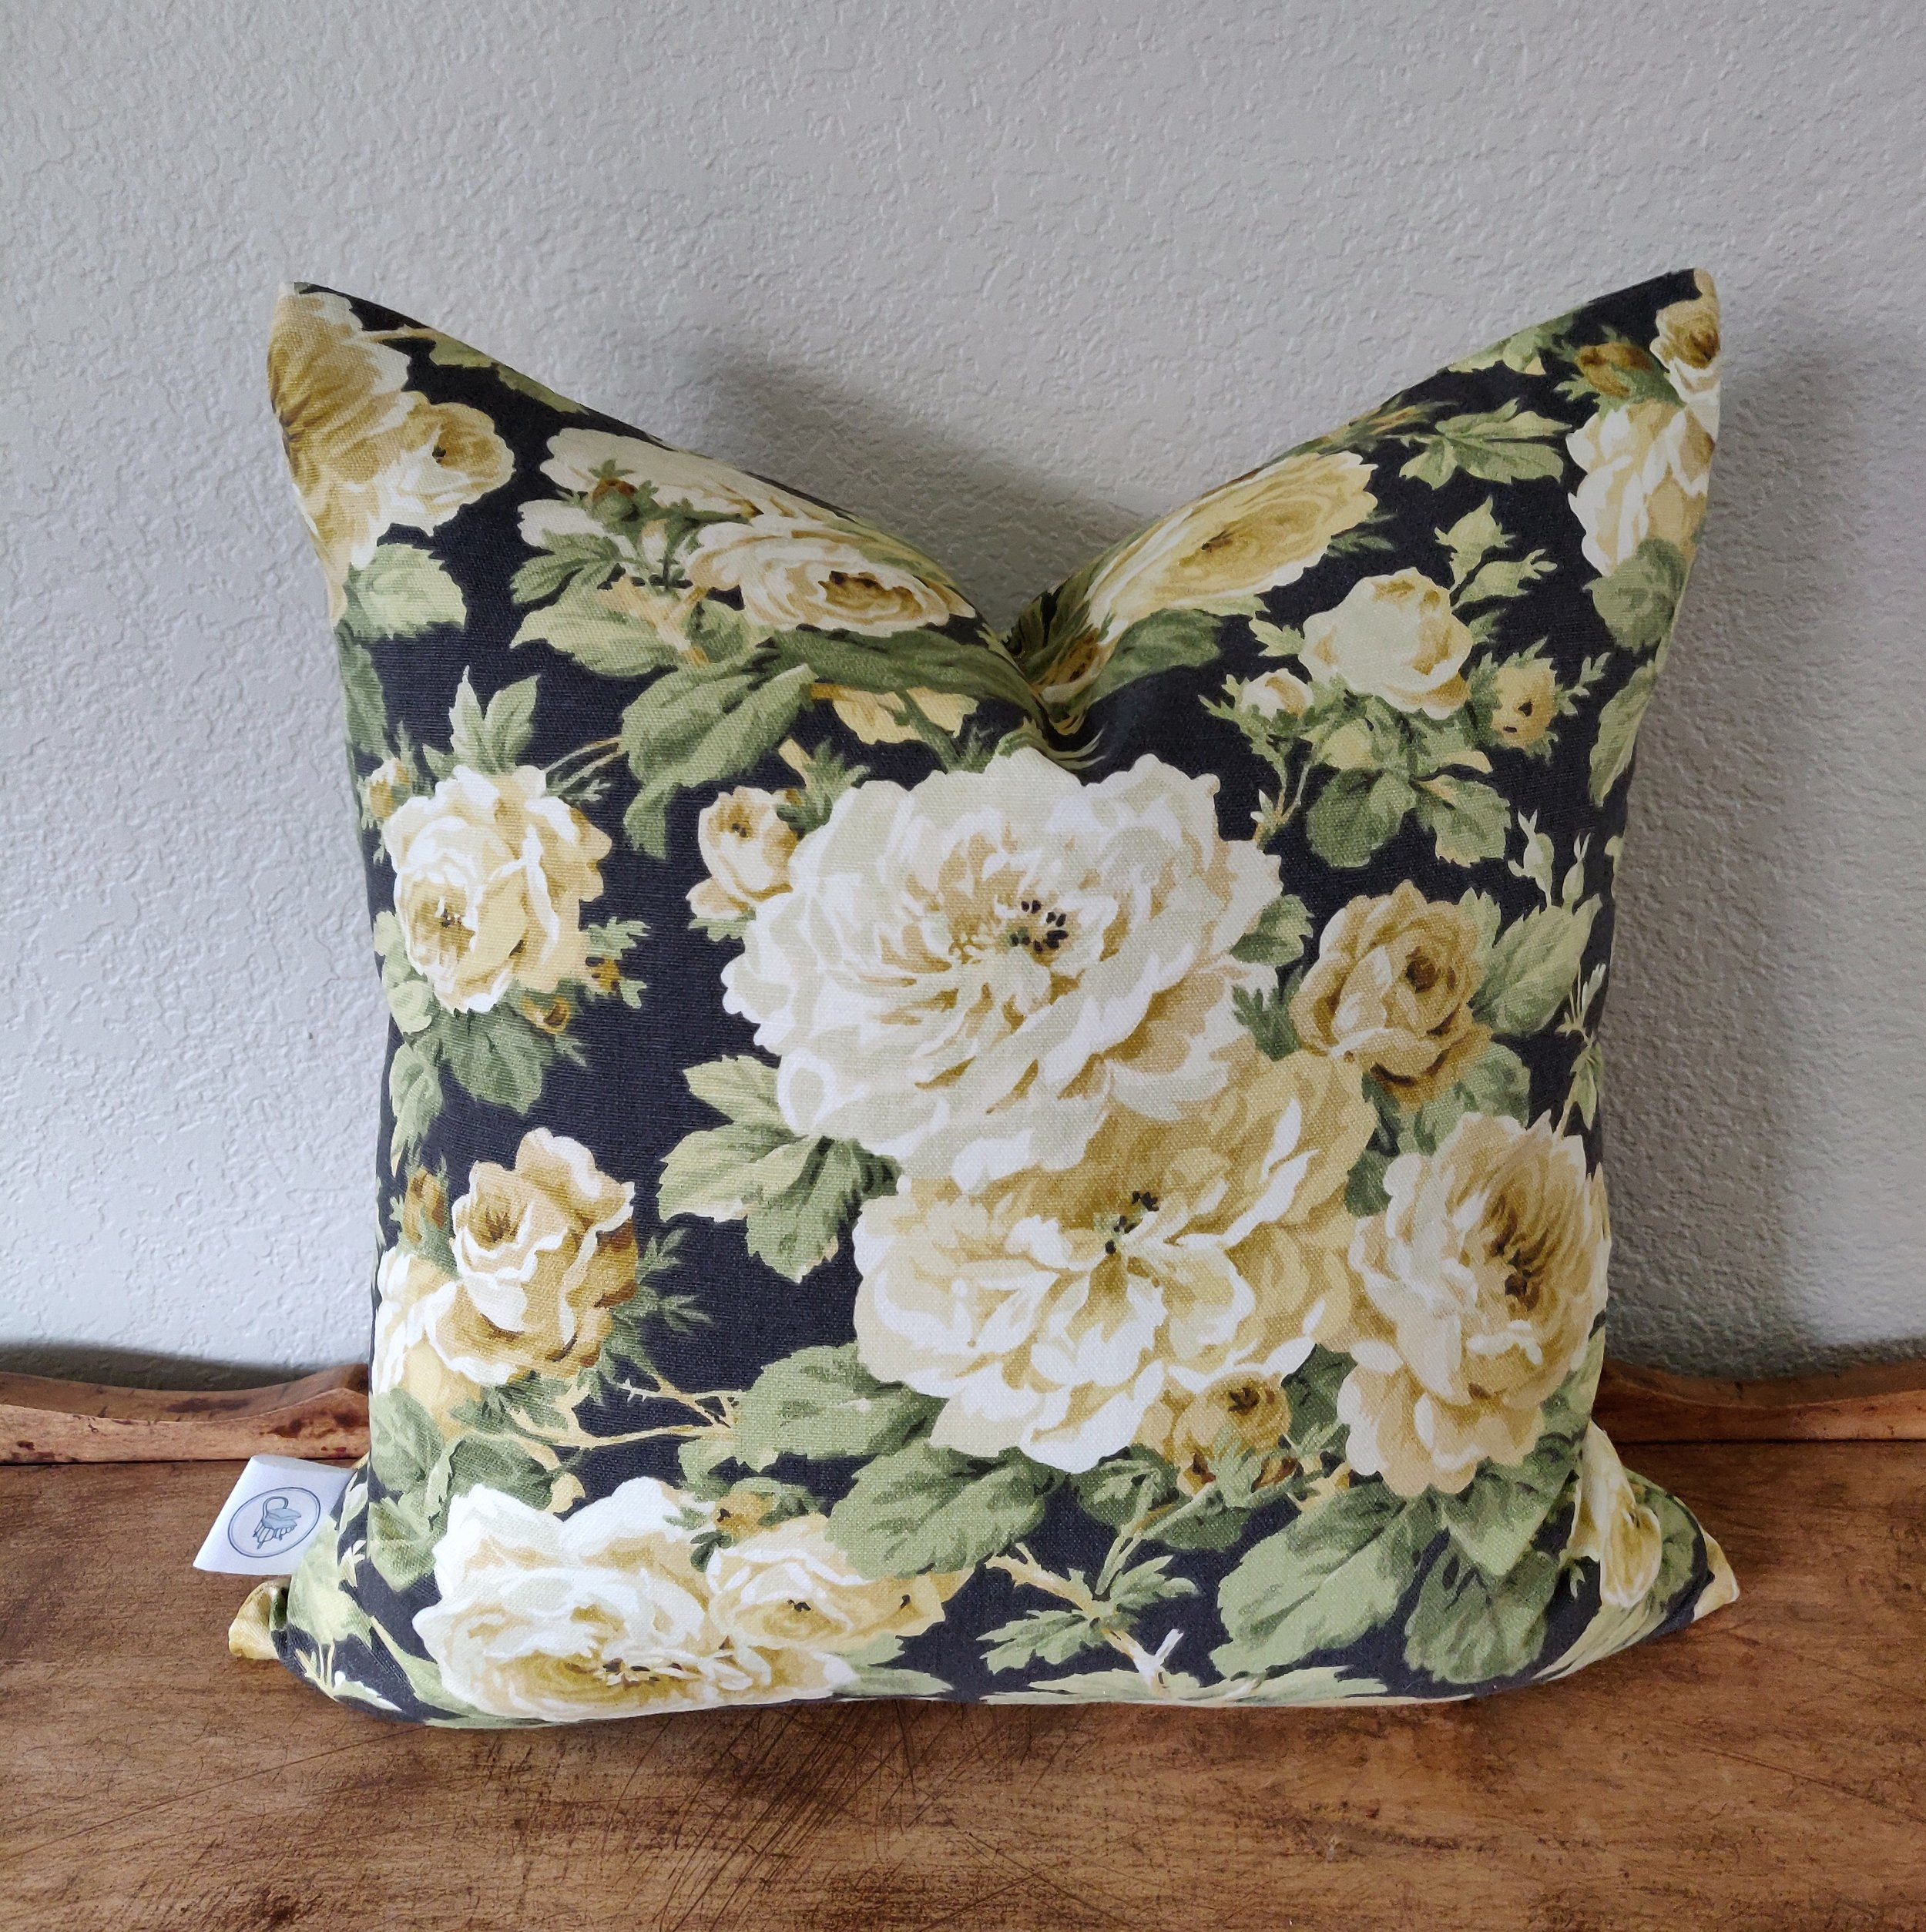 "Vineland - Vintage floral print on a charcoal background, on cotton. Constructed with an invisible zipper. Wash and dry medium.18"" x 18"" - $32.00 and 14"" x 20"" - $30.00Colors: vintage golds and greens on charcoal"